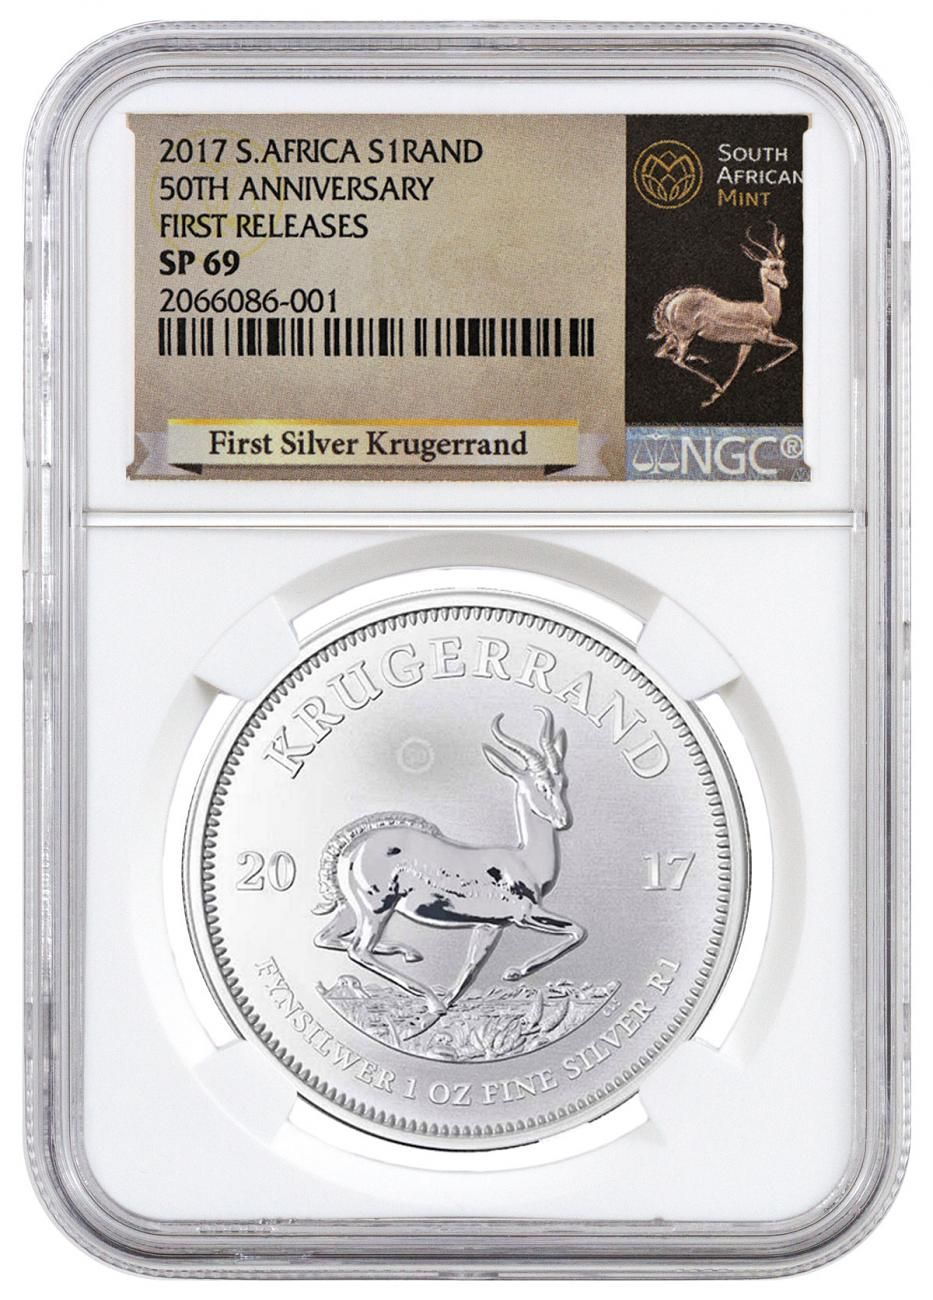 2017 1 Oz South Africa Krugerrand 999 Silver Coin Ngc Sp69 First Releases Exclusive Krugerrand Label Silver Krugerrand Silver Coins Silver Eagle Coins